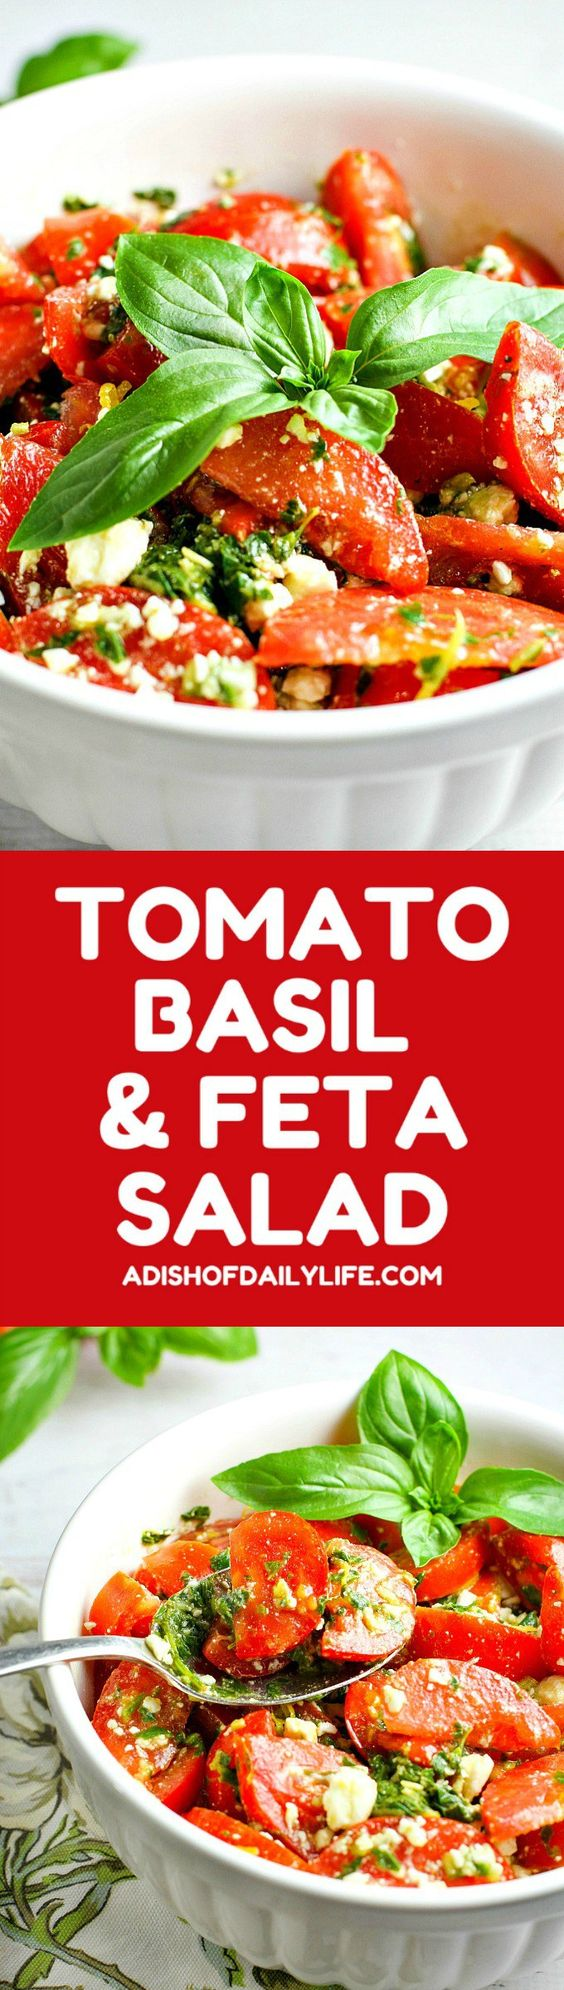 salad basil tomatoes salads feta salad with everything summer healthy ...